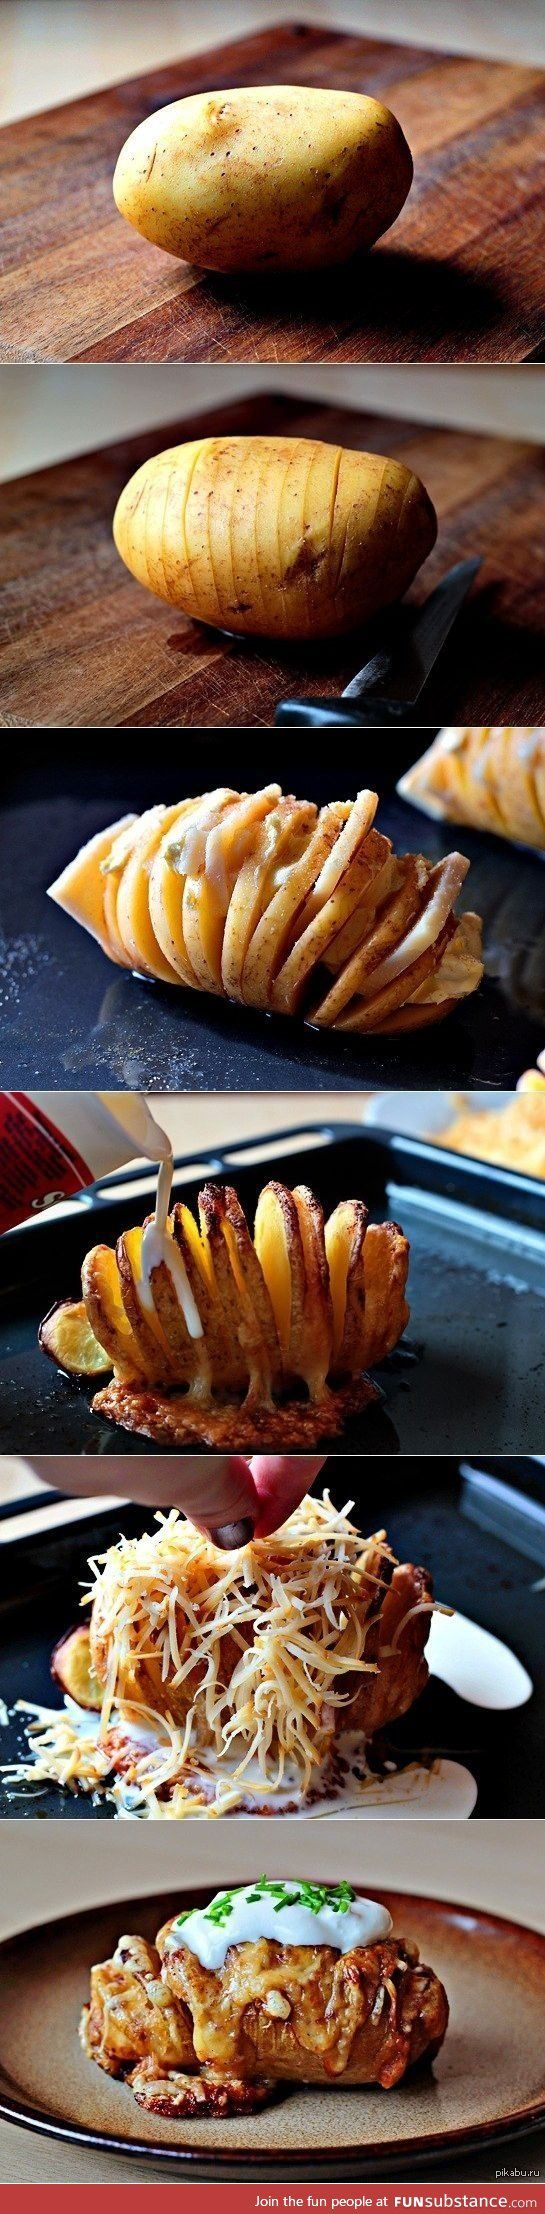 Great way to make a baked potato